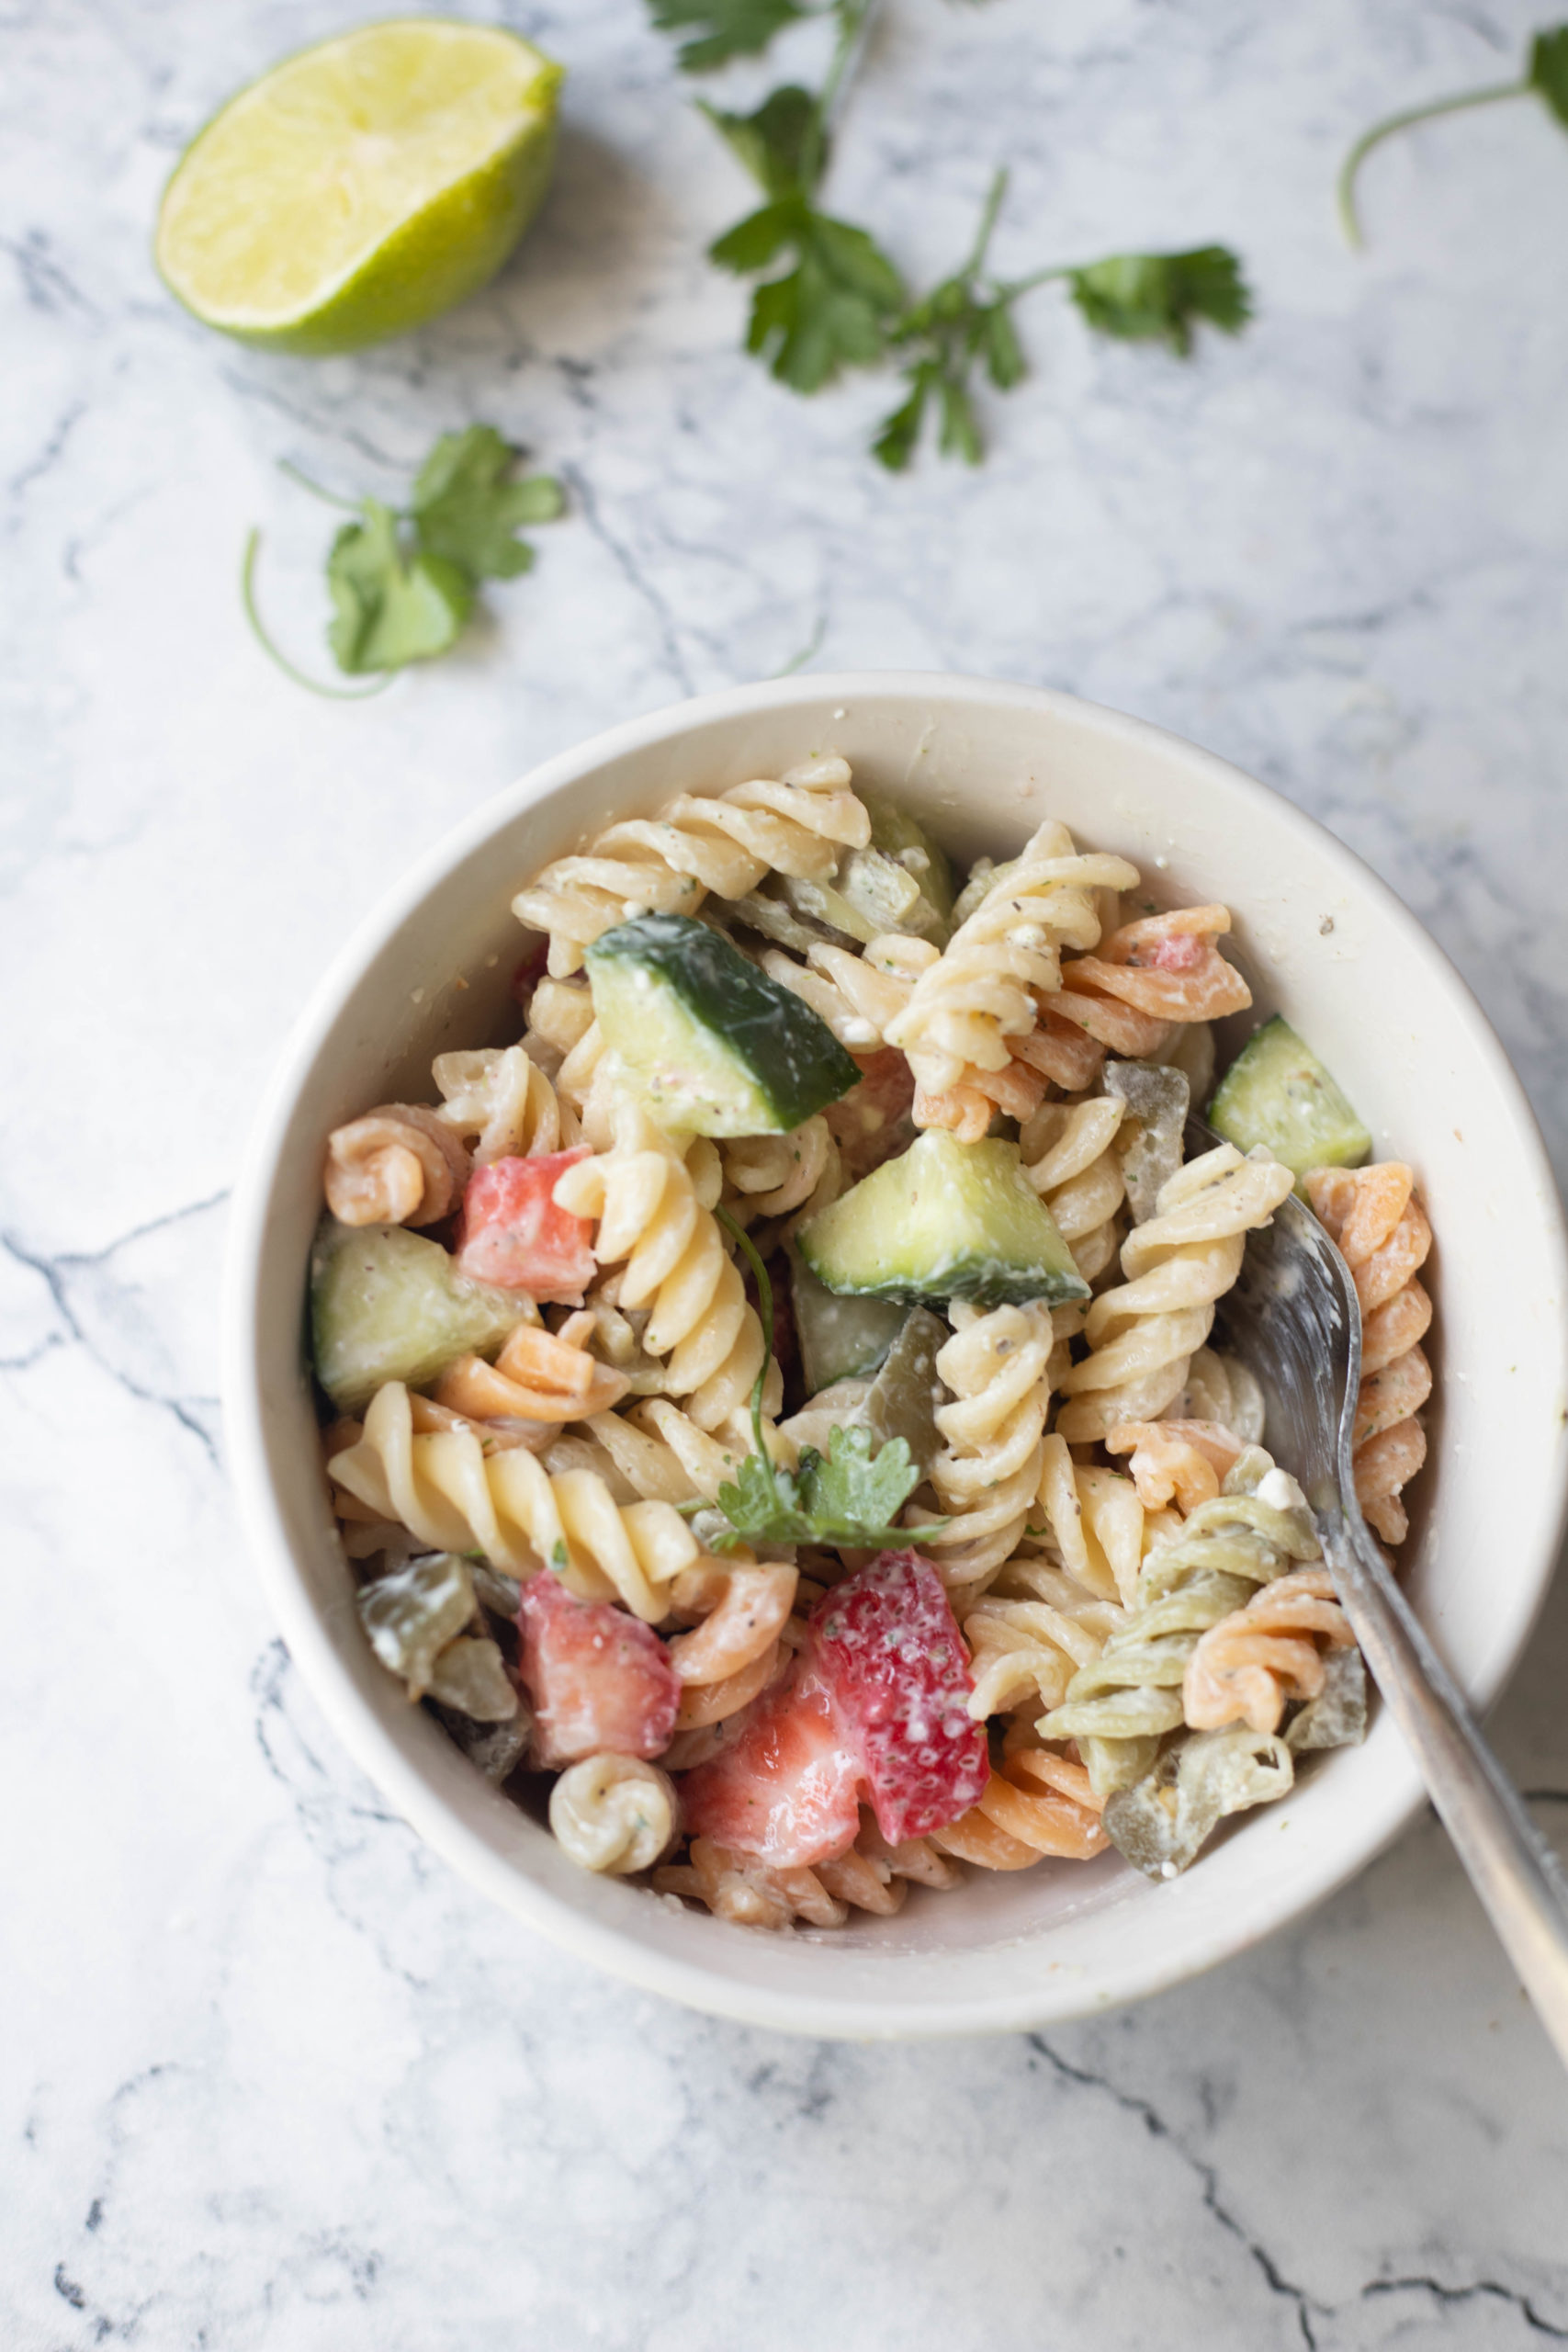 a bowl of low fat pasta salad